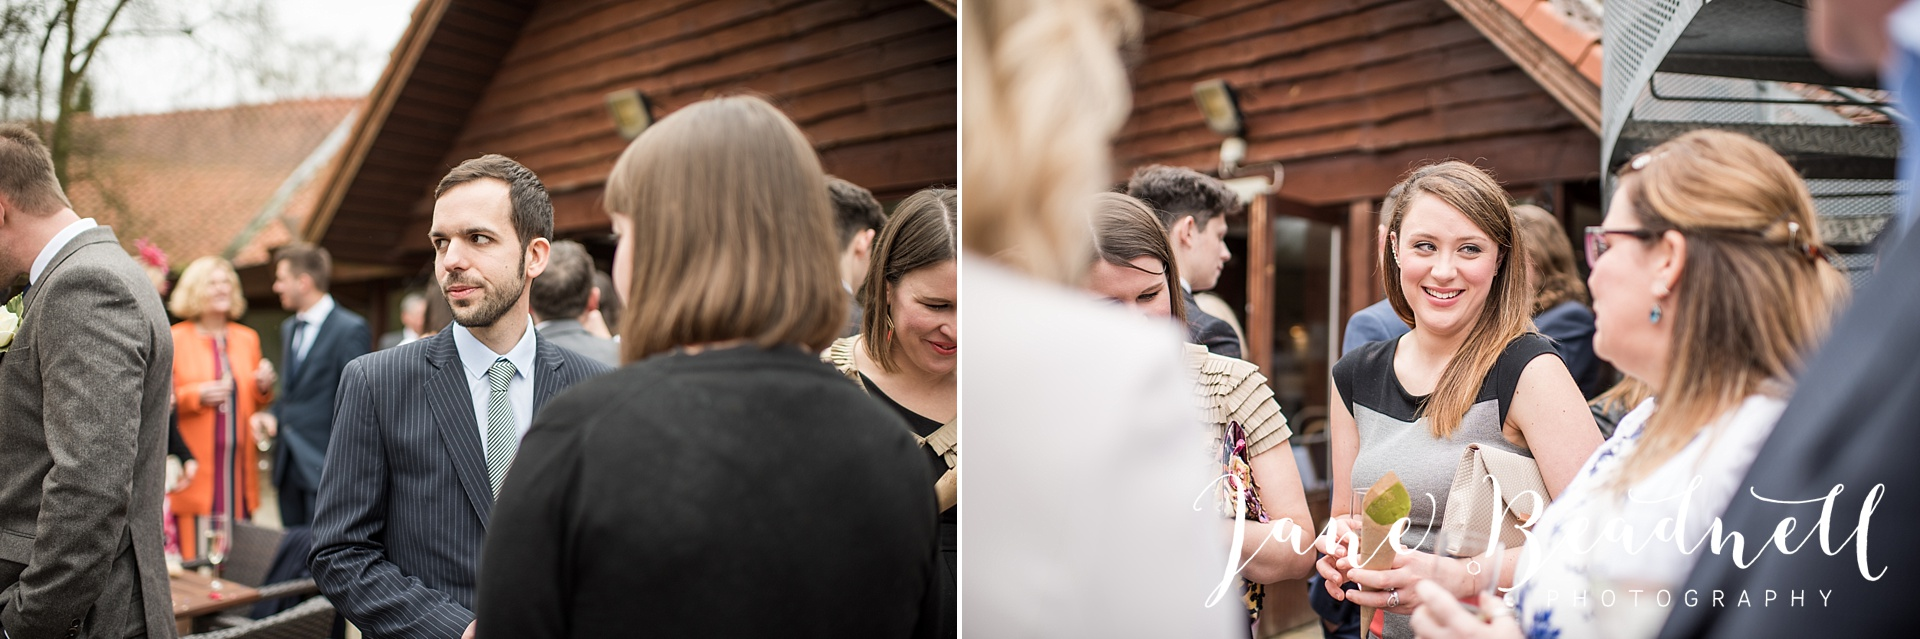 Otley Chevin Lodge wedding photography by Jane Beadnell Photography Leeds_0067